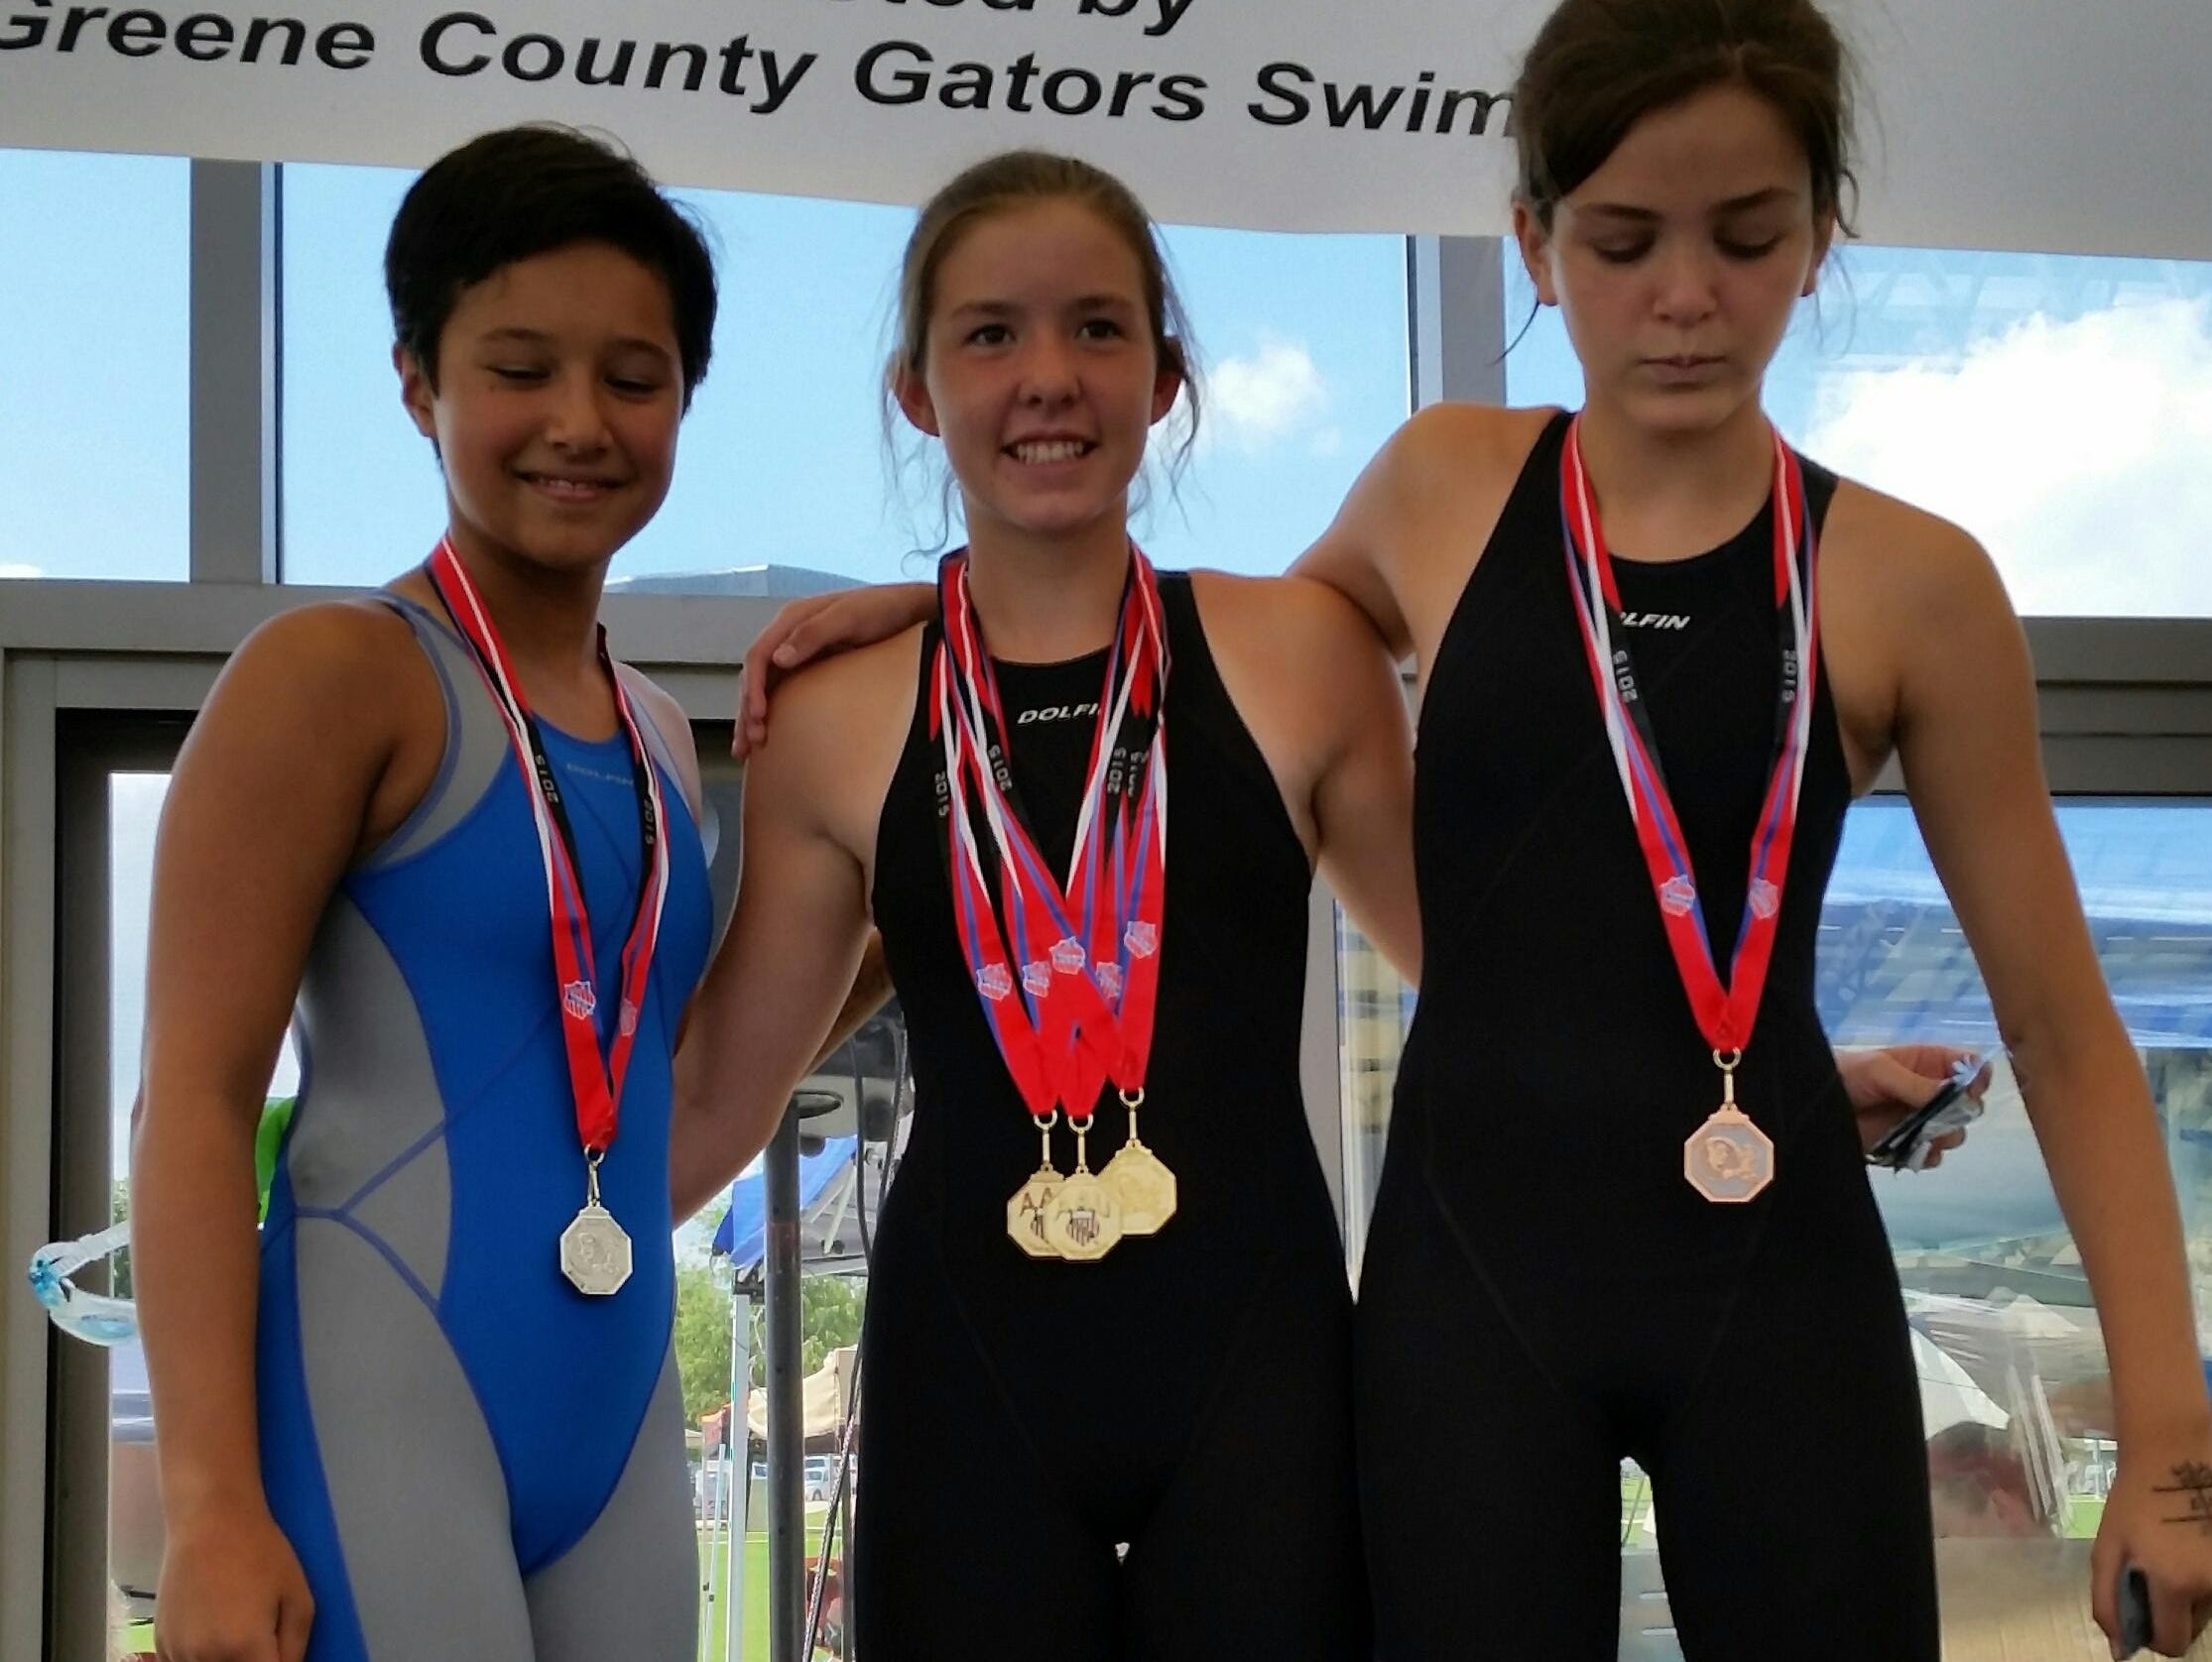 Mountain Home Hurricane swimmers Joia Traver (second), Mallory Brownrigg (first) and Madelyn Lynch (third) stand on the podium after their sweep in the 100-yard backstroke over the weekend at Paragould.